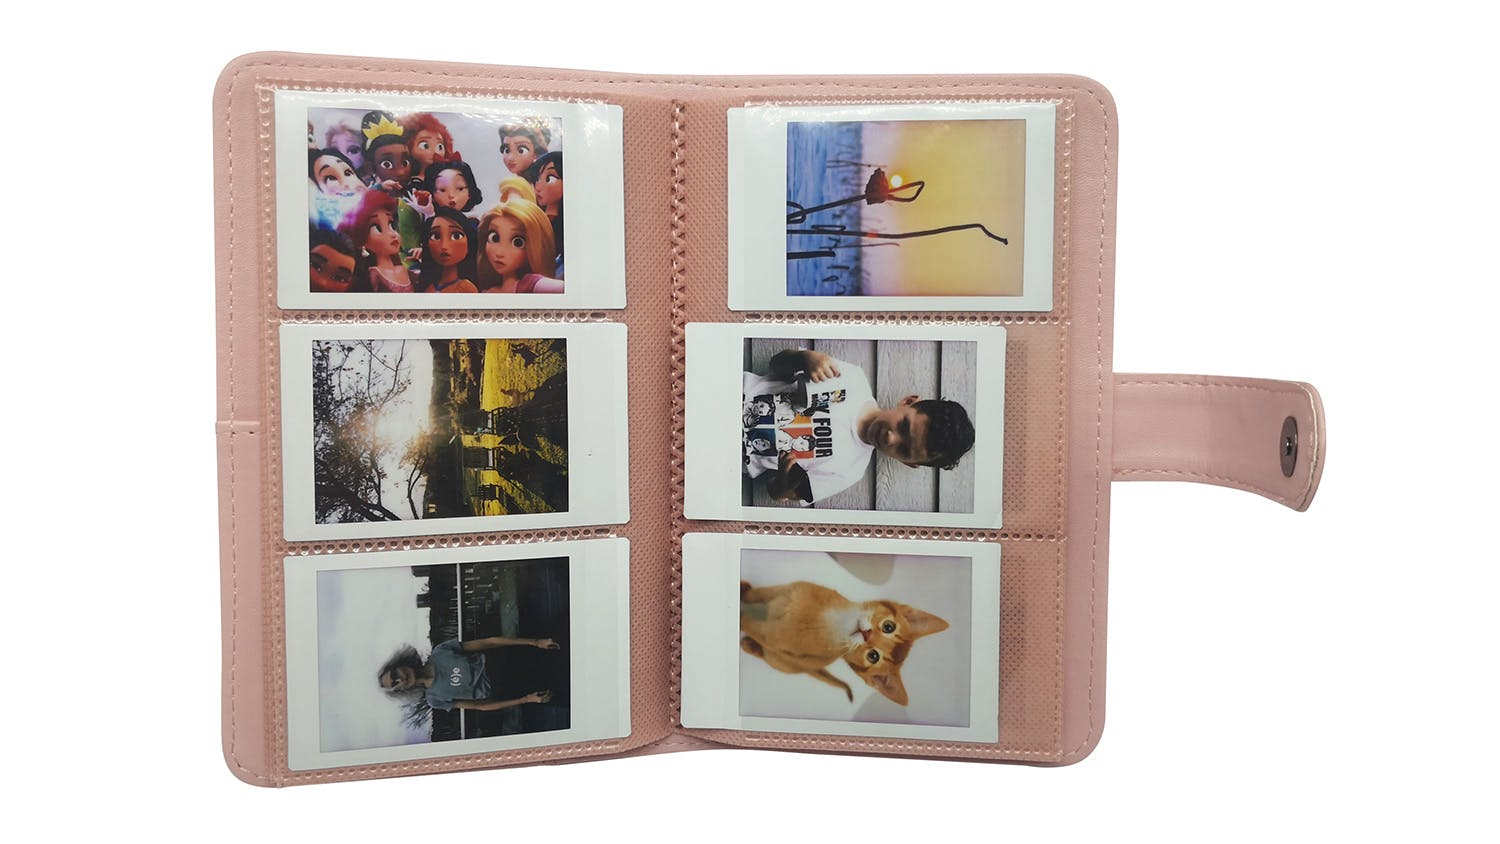 Instax Mini 11 Album - Pink Stripe